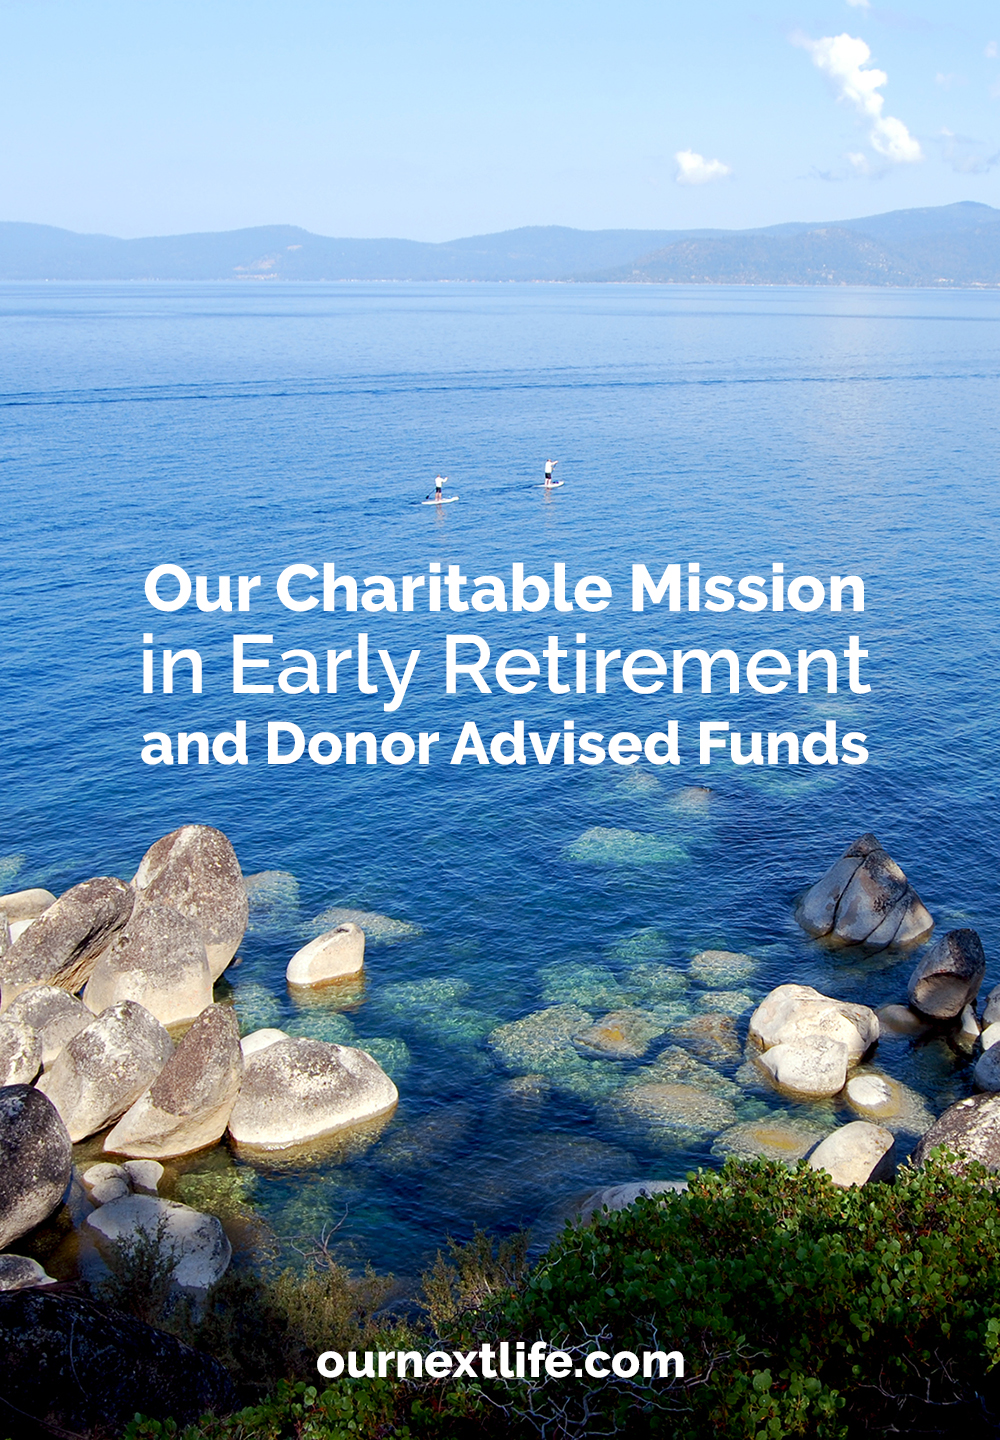 Charitable mission, donor advised fund, charitable giving in retirement, early retirement, financial independence